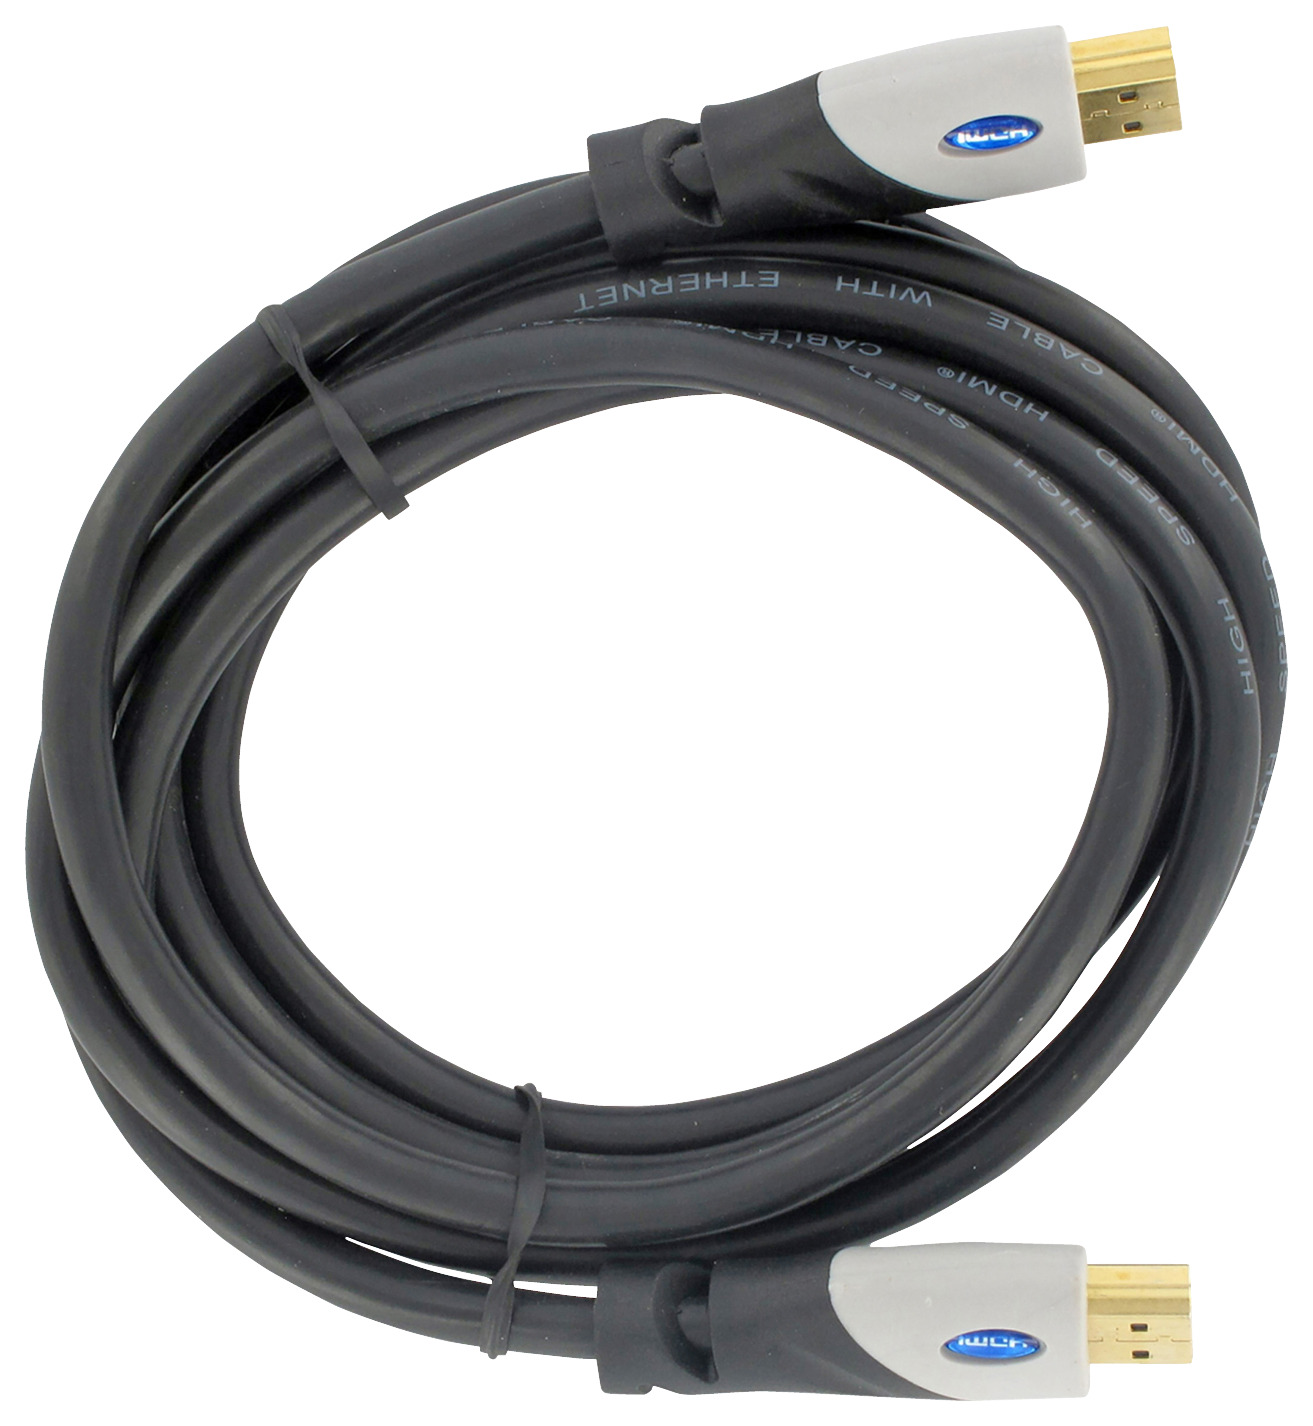 Q-Link HDMI kabel high speed gold plated 3D 5 meter zwart